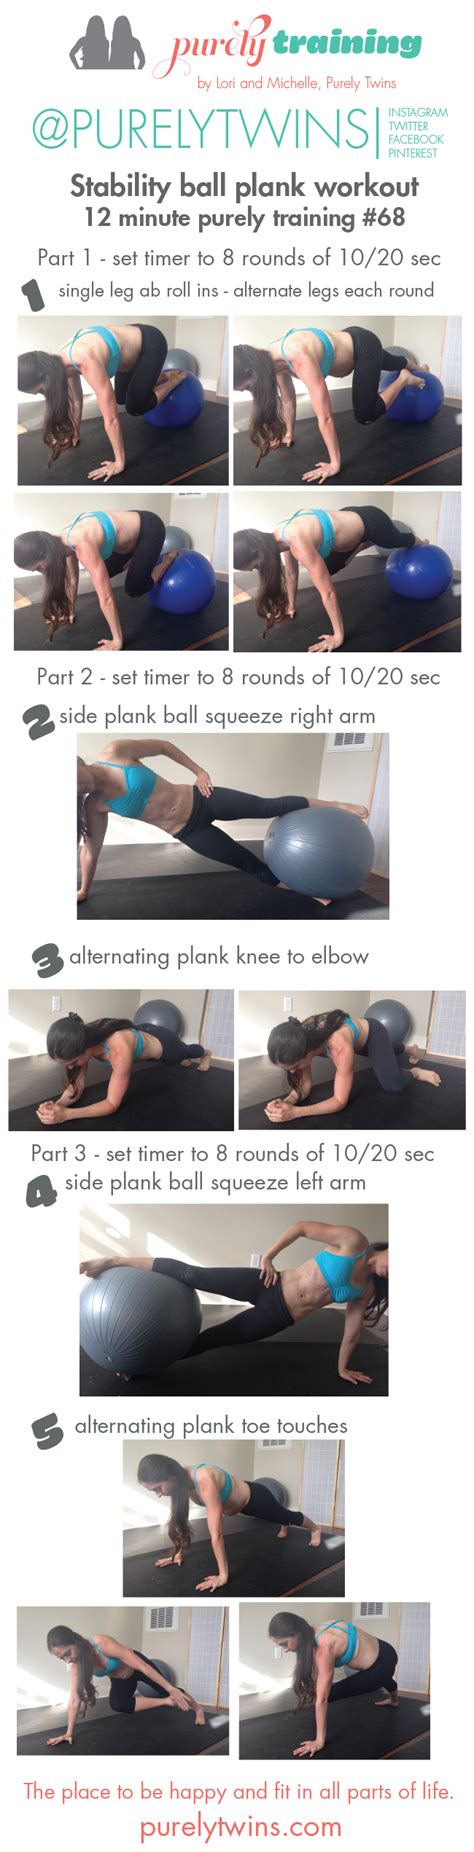 mid section workout 12 minute plank workout using a stability ball